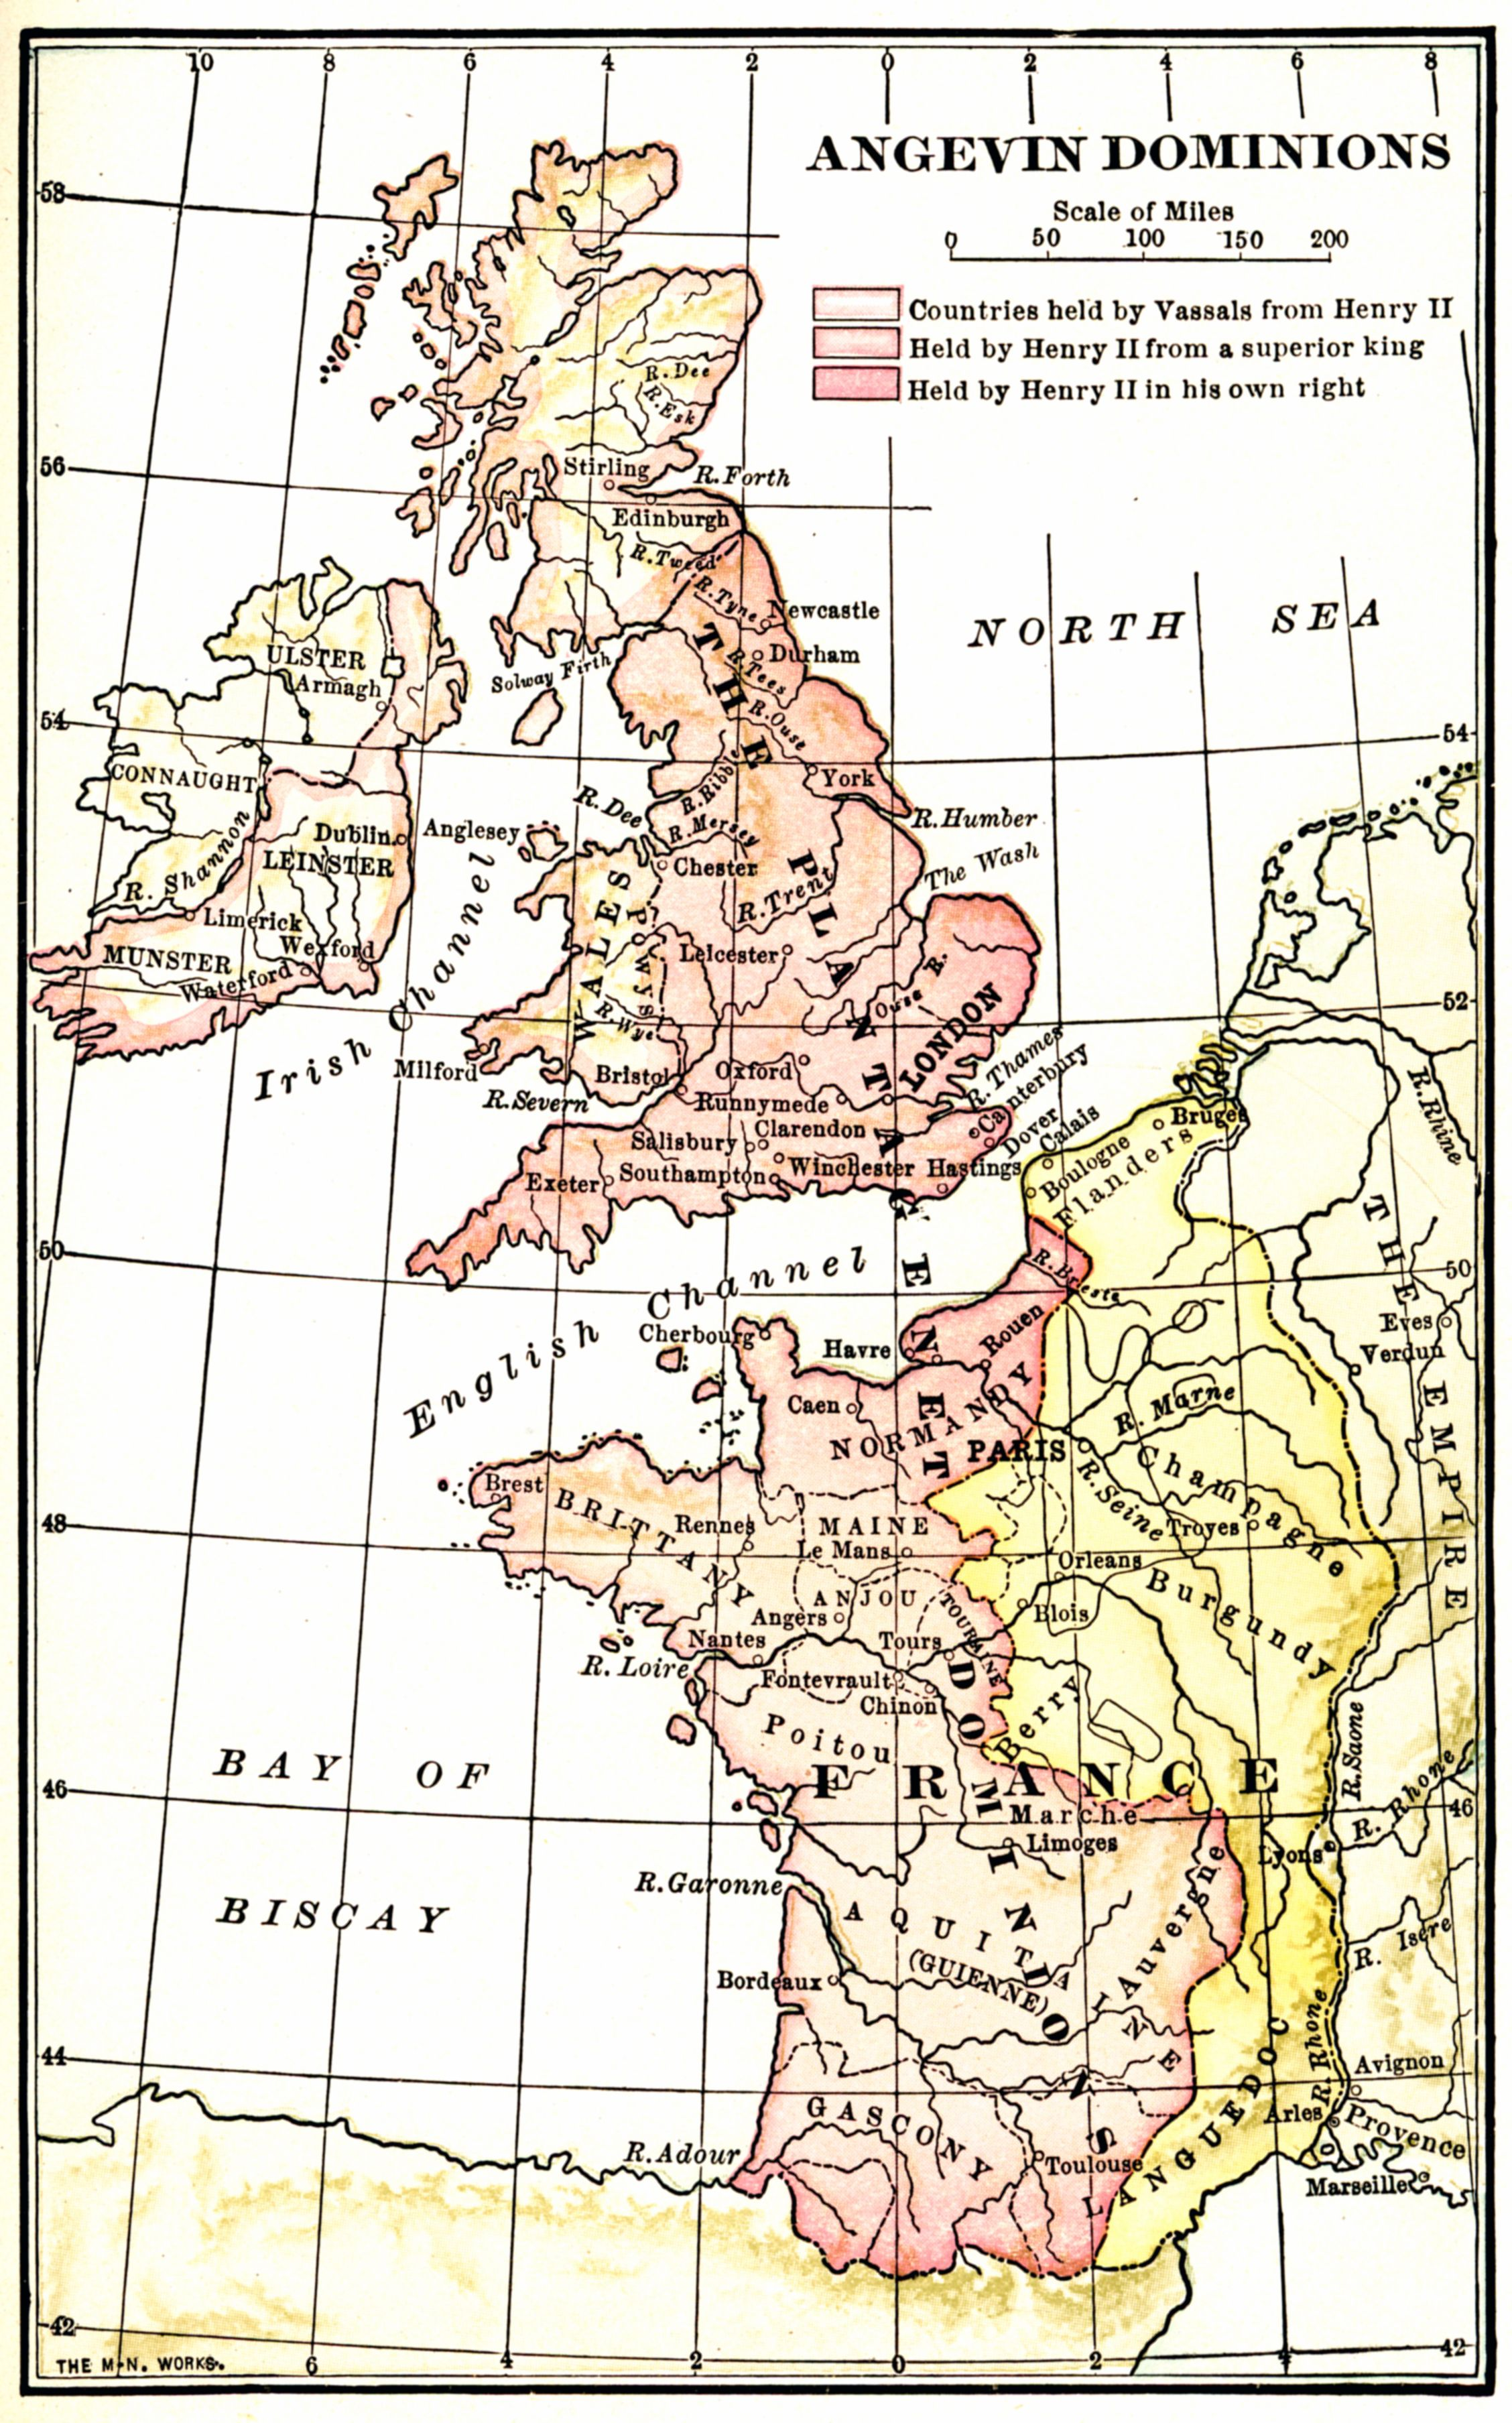 Map Of France England And Scotland.The Angevin Dominions 1250 England France Ireland Scotland